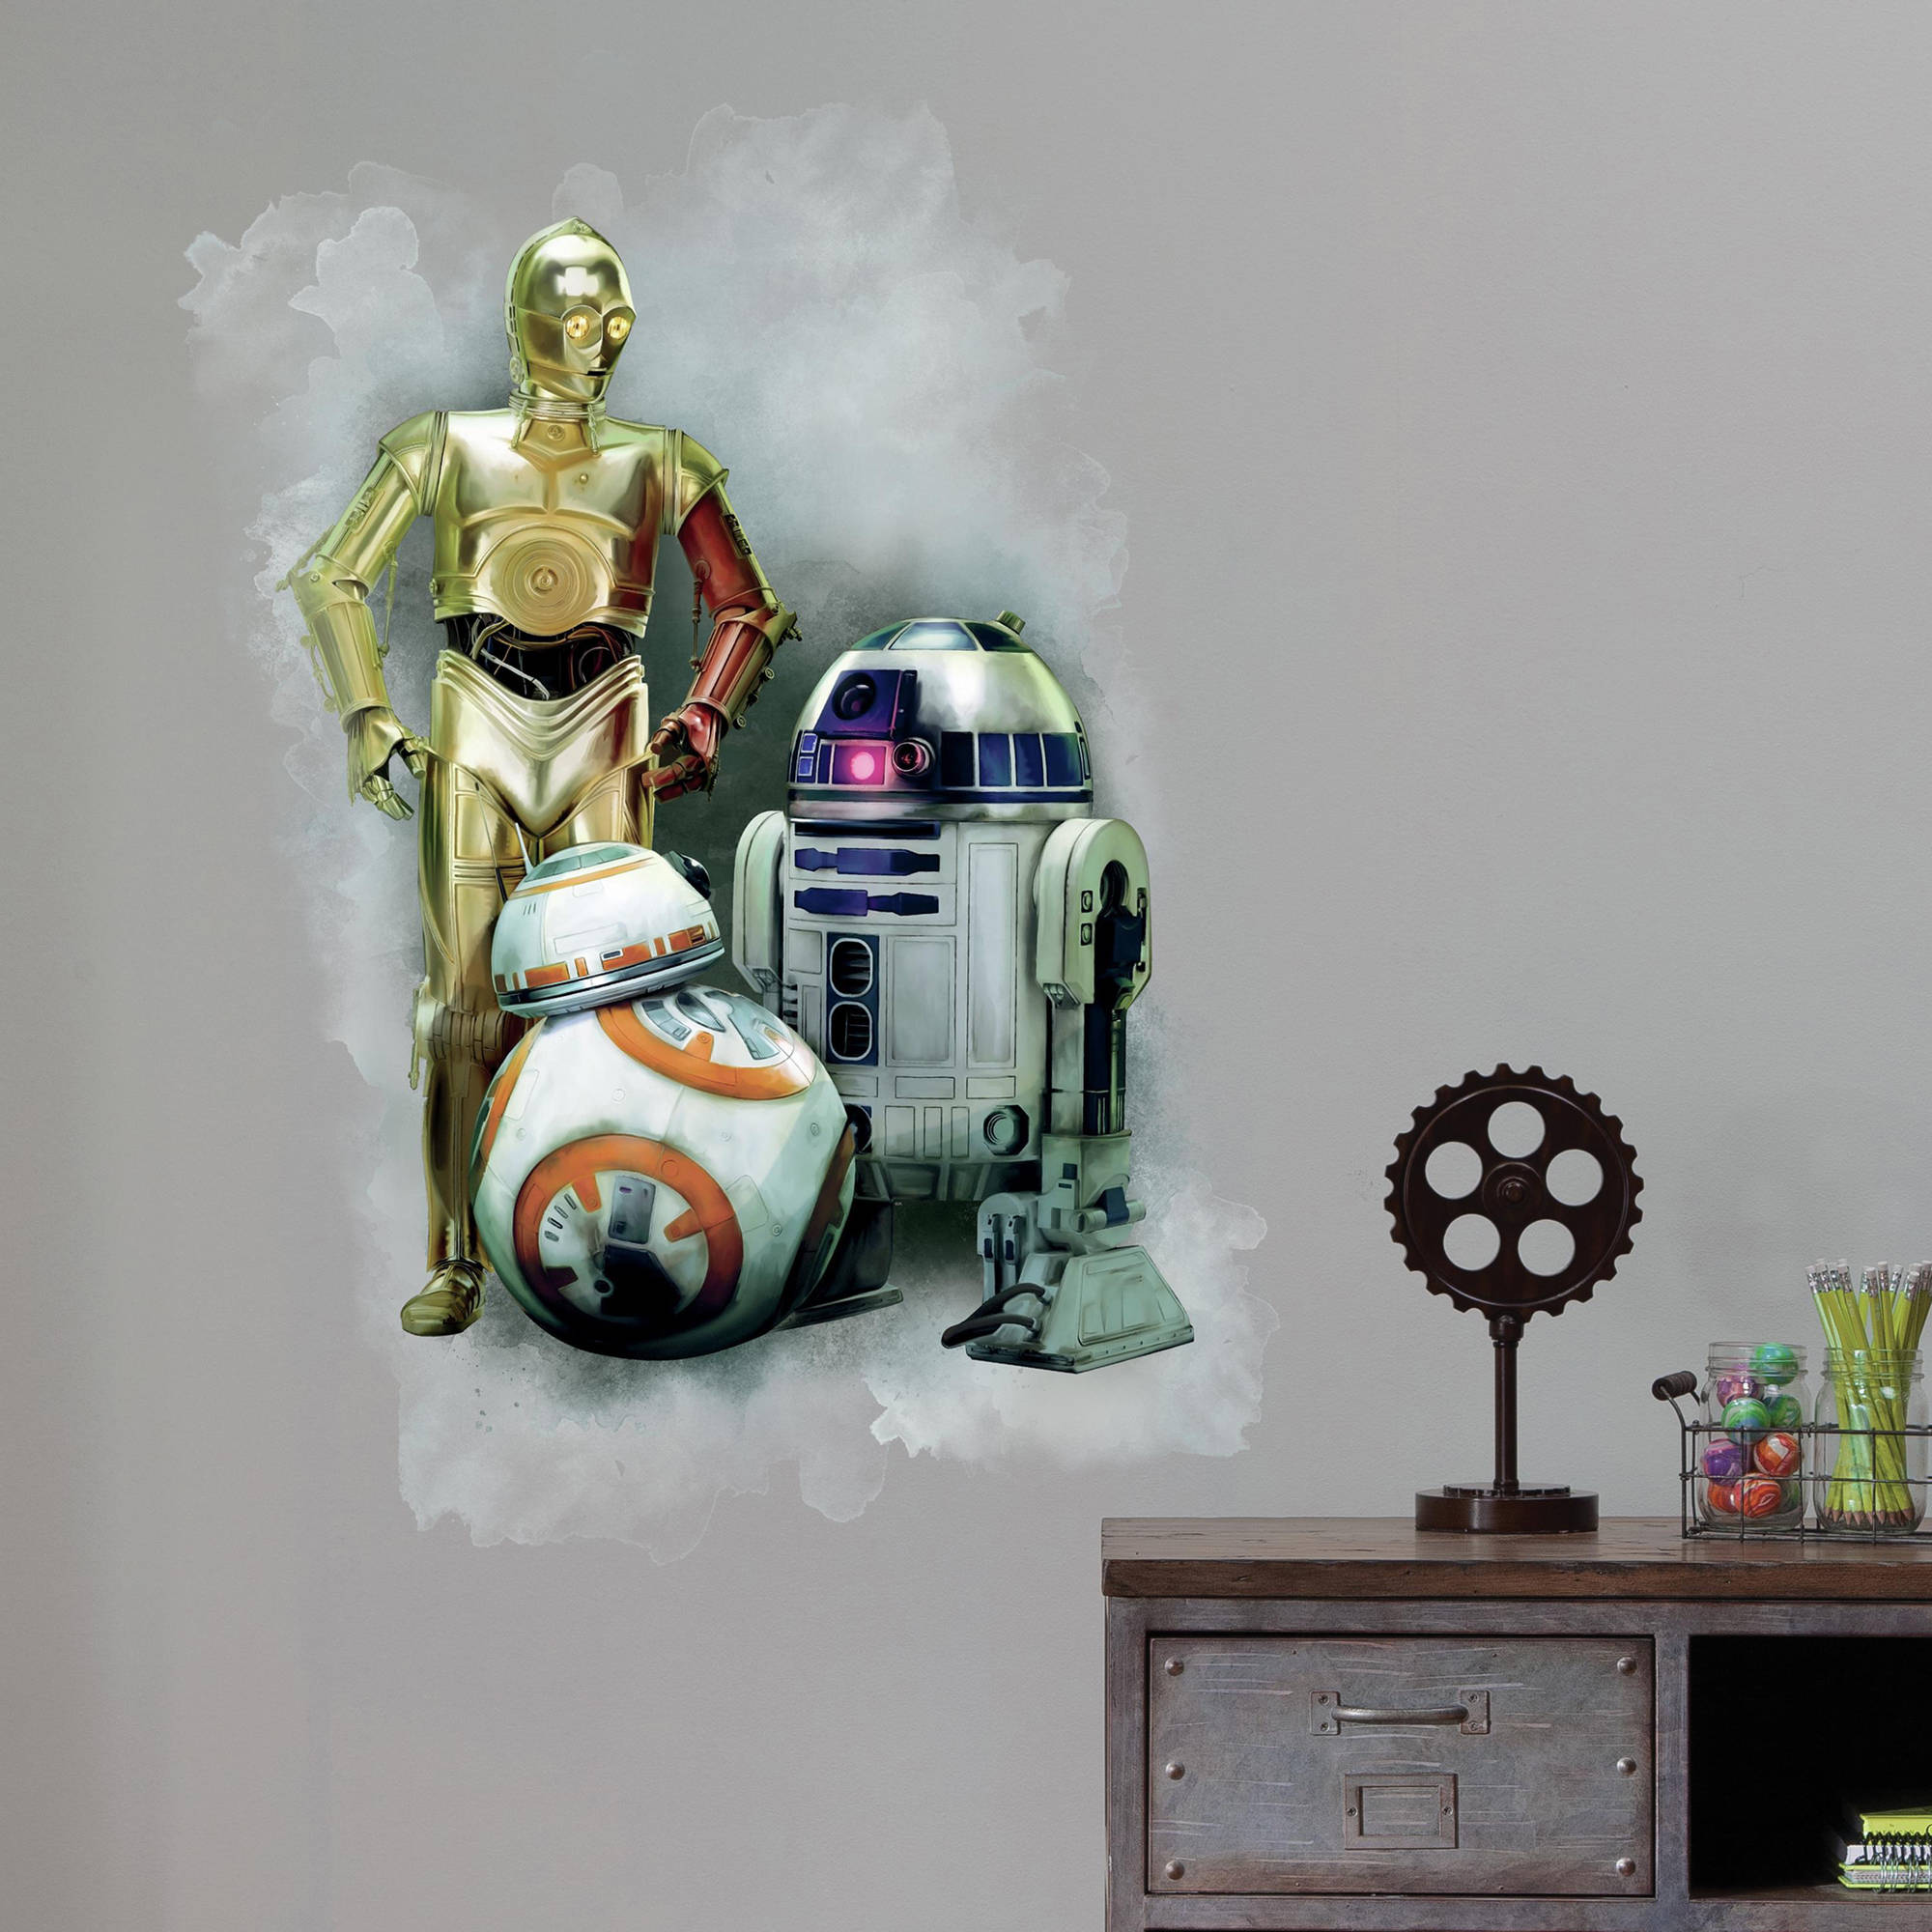 RoomMates Star Wars The Force Awakens Ep VII R2D2, C3PO, BB-8 Peel and Stick Giant Wall Graphic